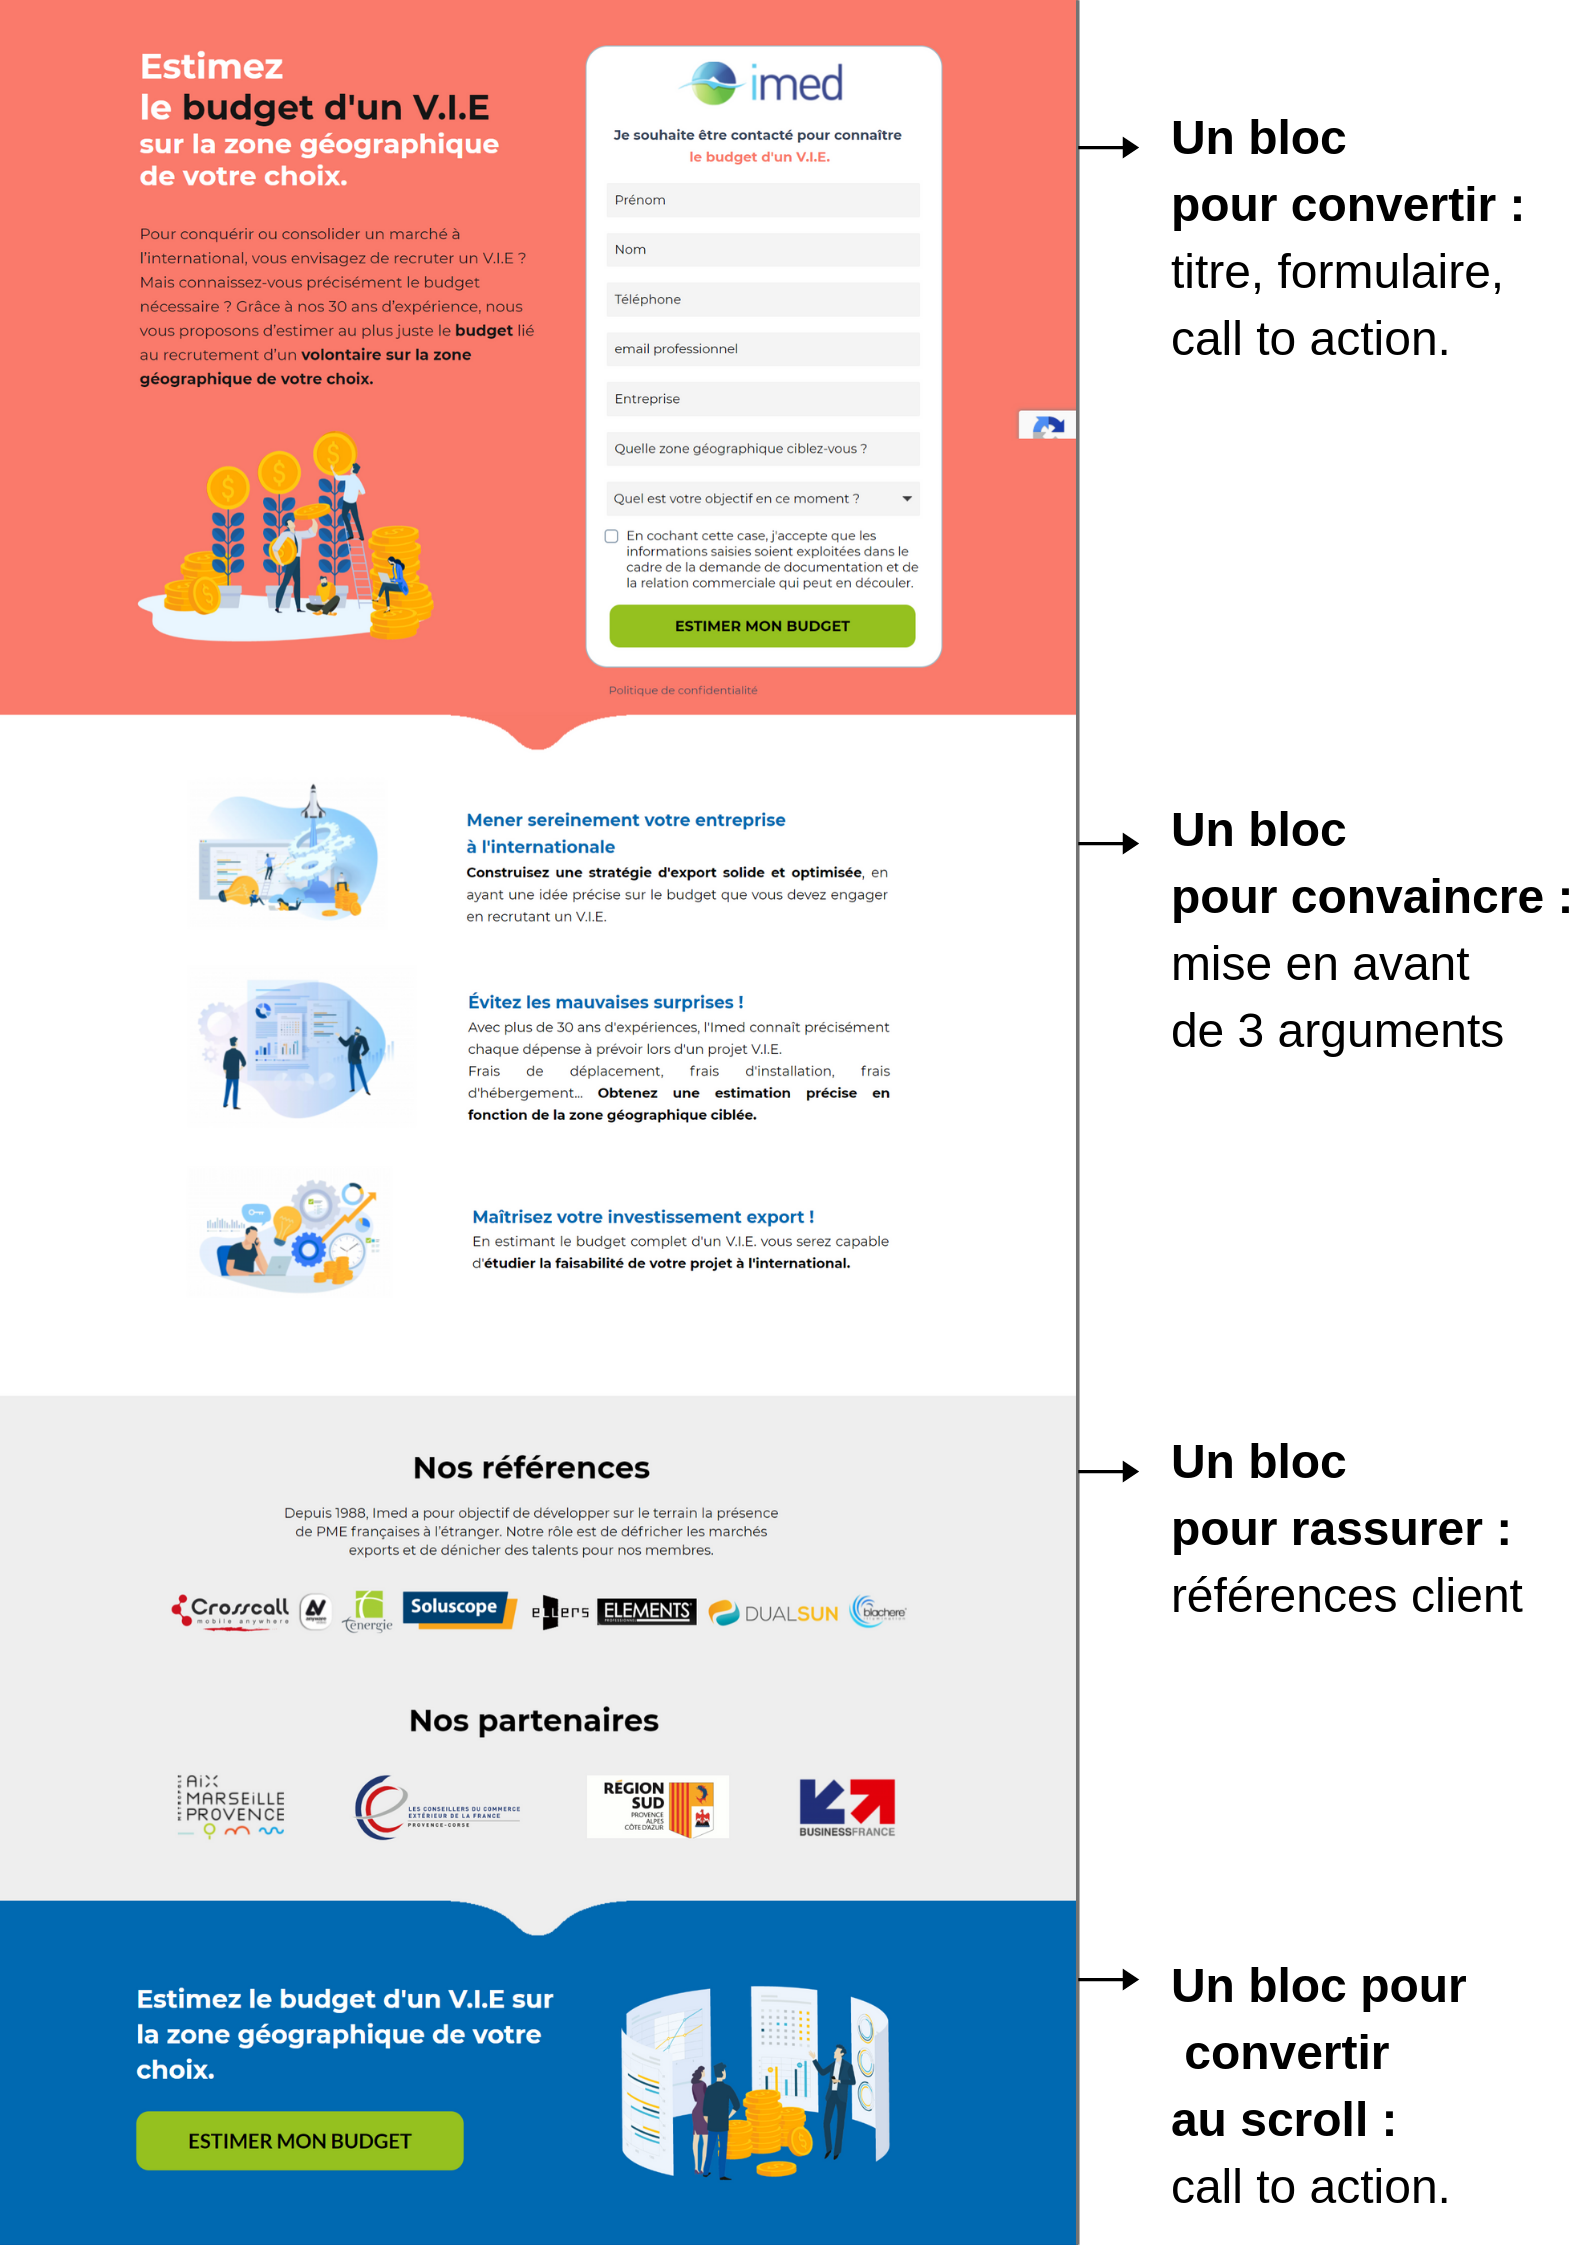 Landing page Imed